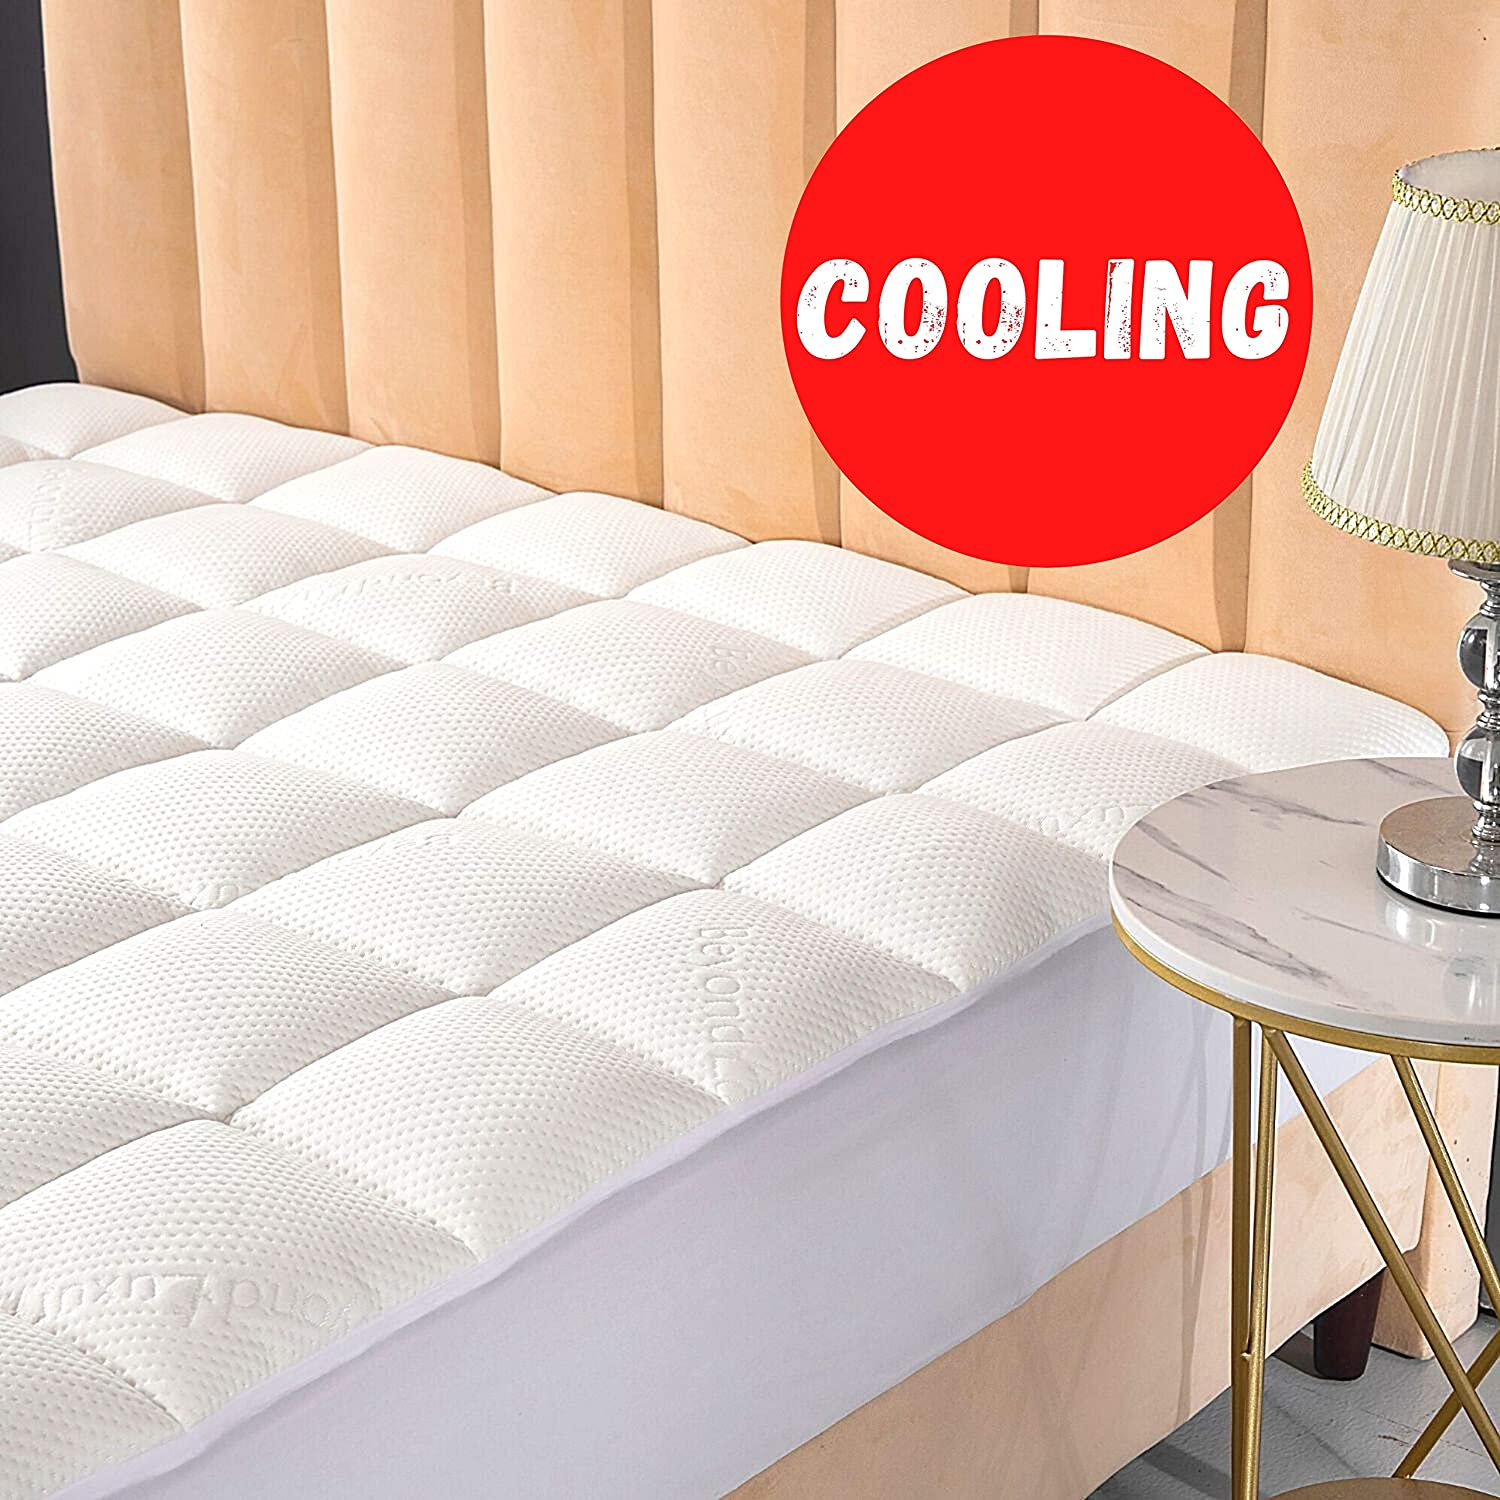 Beyond Luxury Queen Cooling Bamboo Mattress Pad with Fitted Skirt - Ultra Soft Cool Touch Mattress Pad Cover - Extra Plush Hypoallergenic Fill Pillow Top Rayon from Bamboo Pad Topper